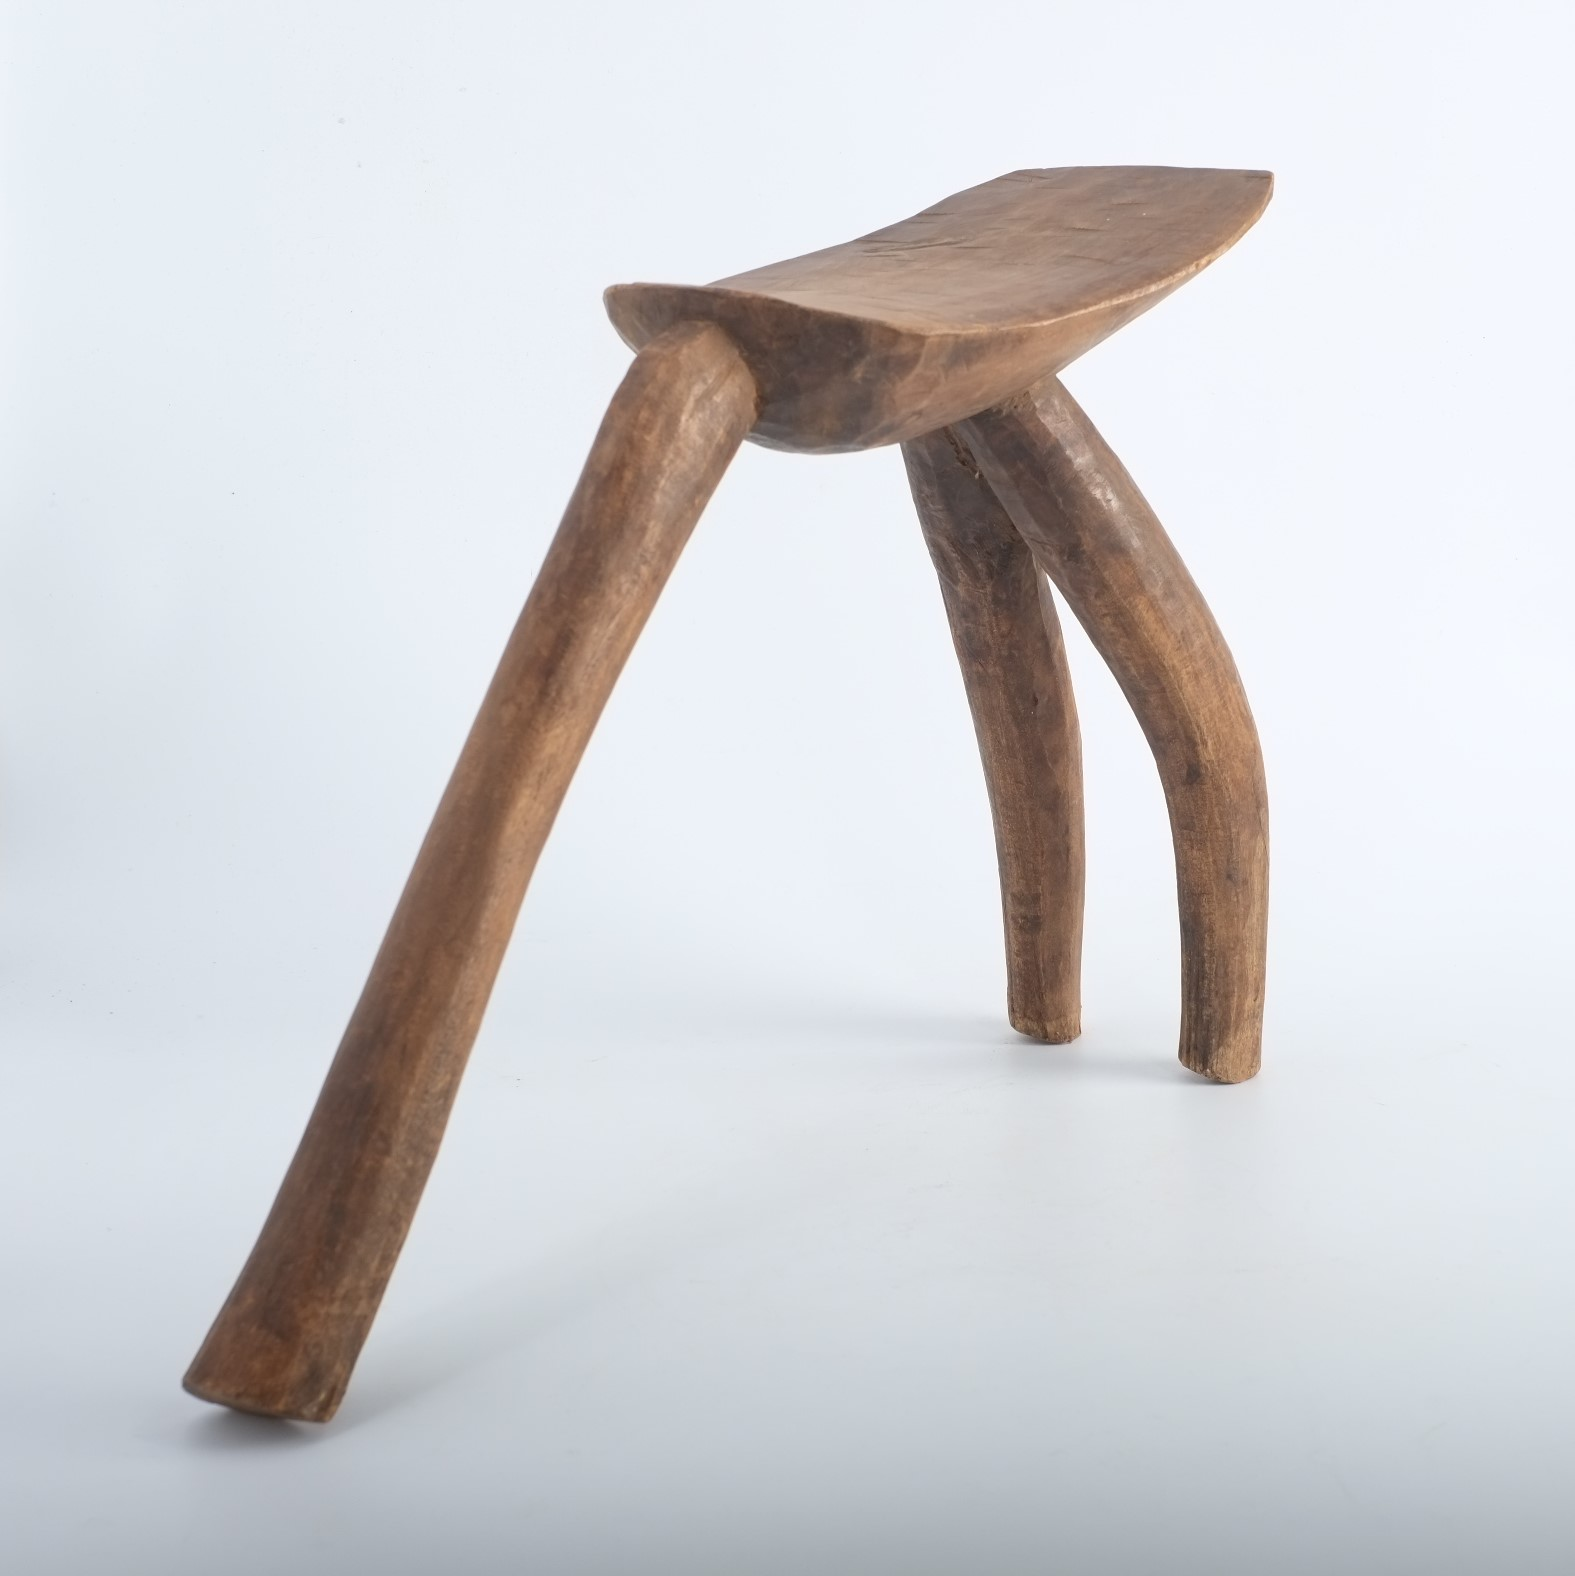 Tabouret traditionnel LOBI en bois du Burkina Faso